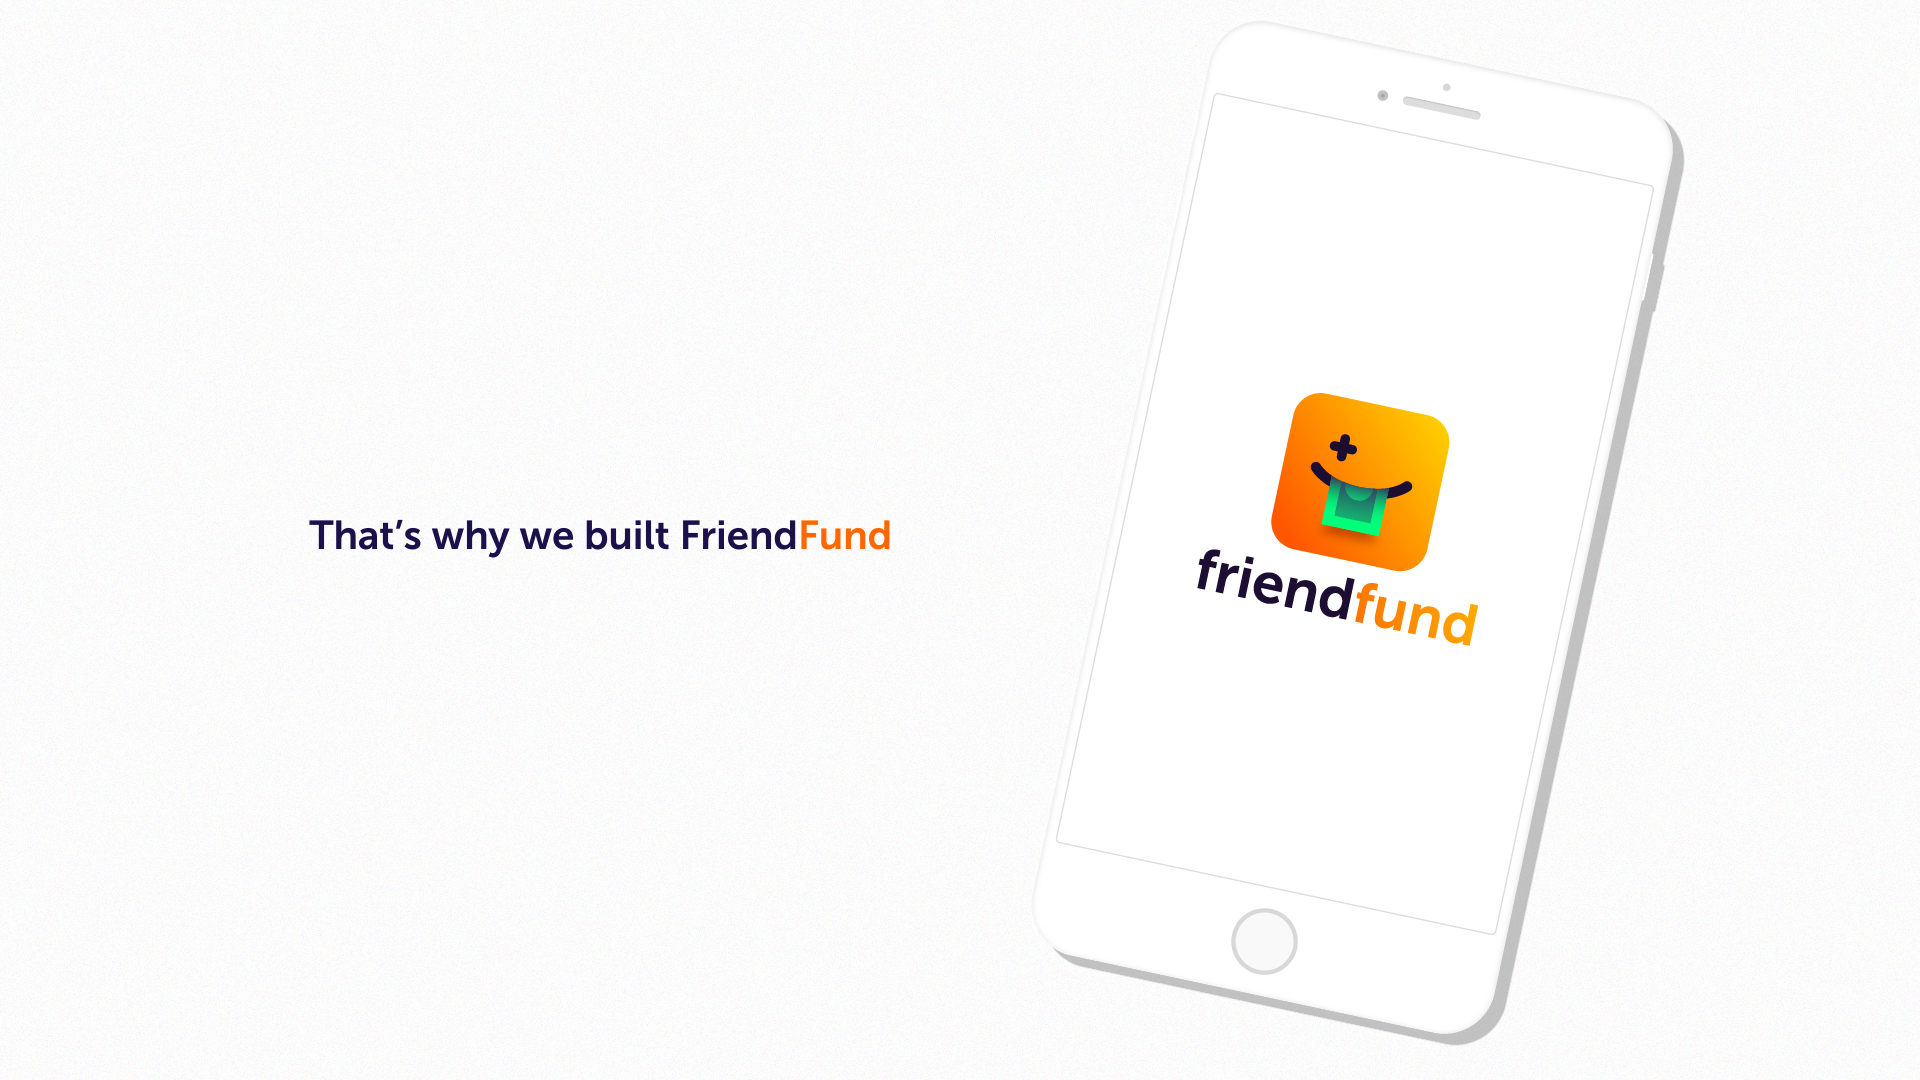 FriendFund app launch motion design